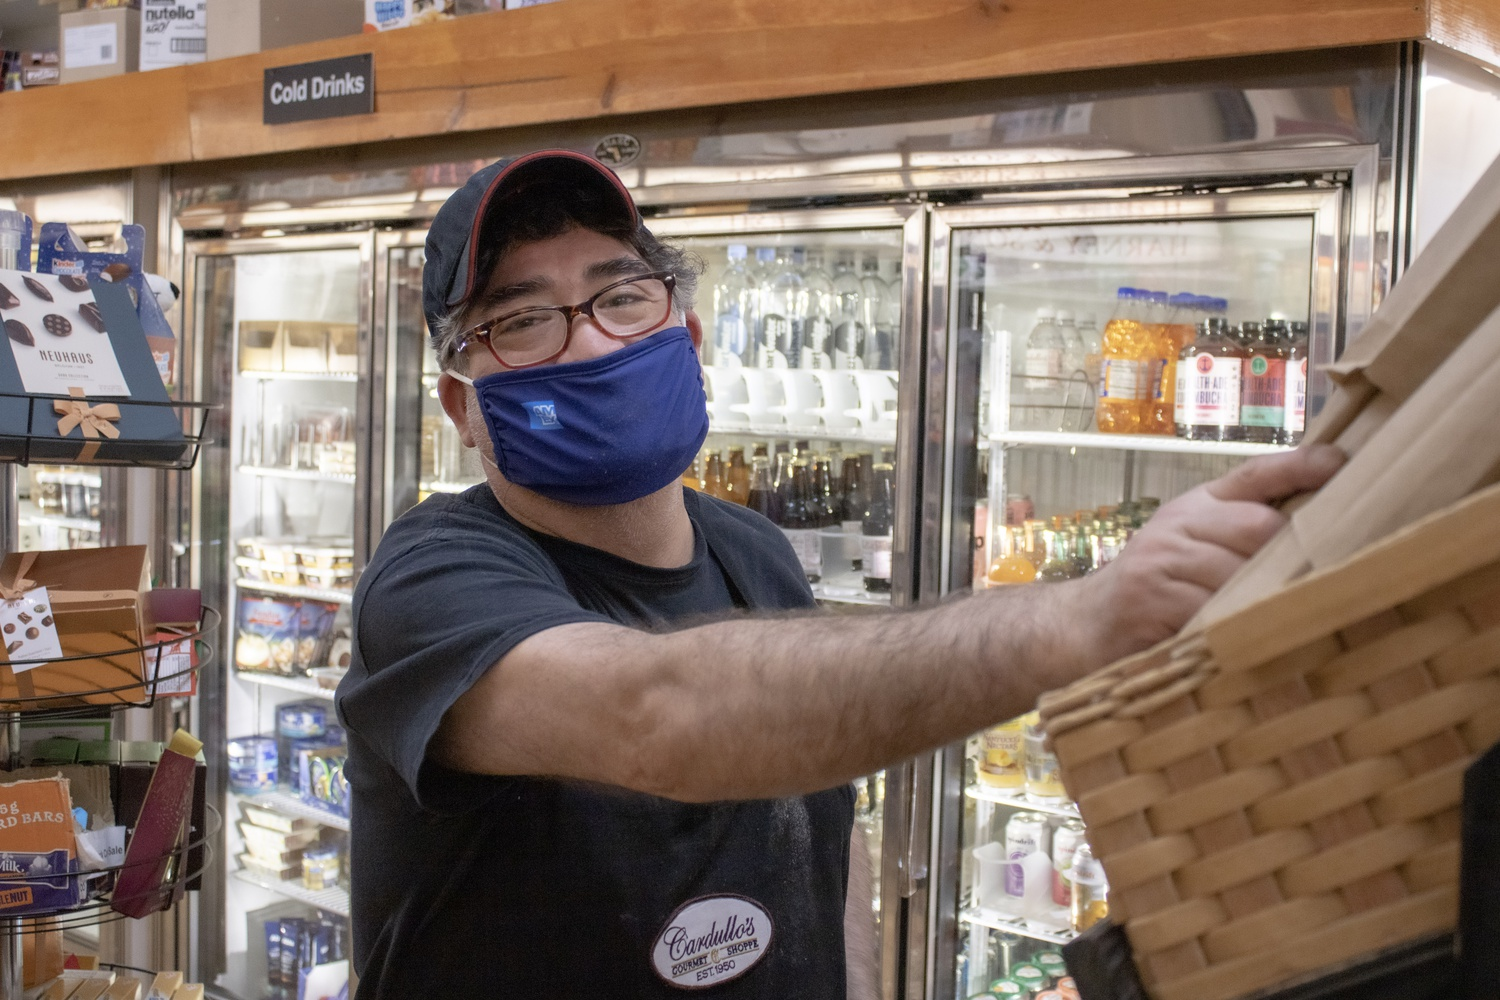 An employee at Cardullo's Gourmet Shoppe on Brattle Street prepares fresh bread by the deli counter. Cardullo's has remained open, despite the pandemic, to provide gourmet delicacies and gifts, as it has since 1950.